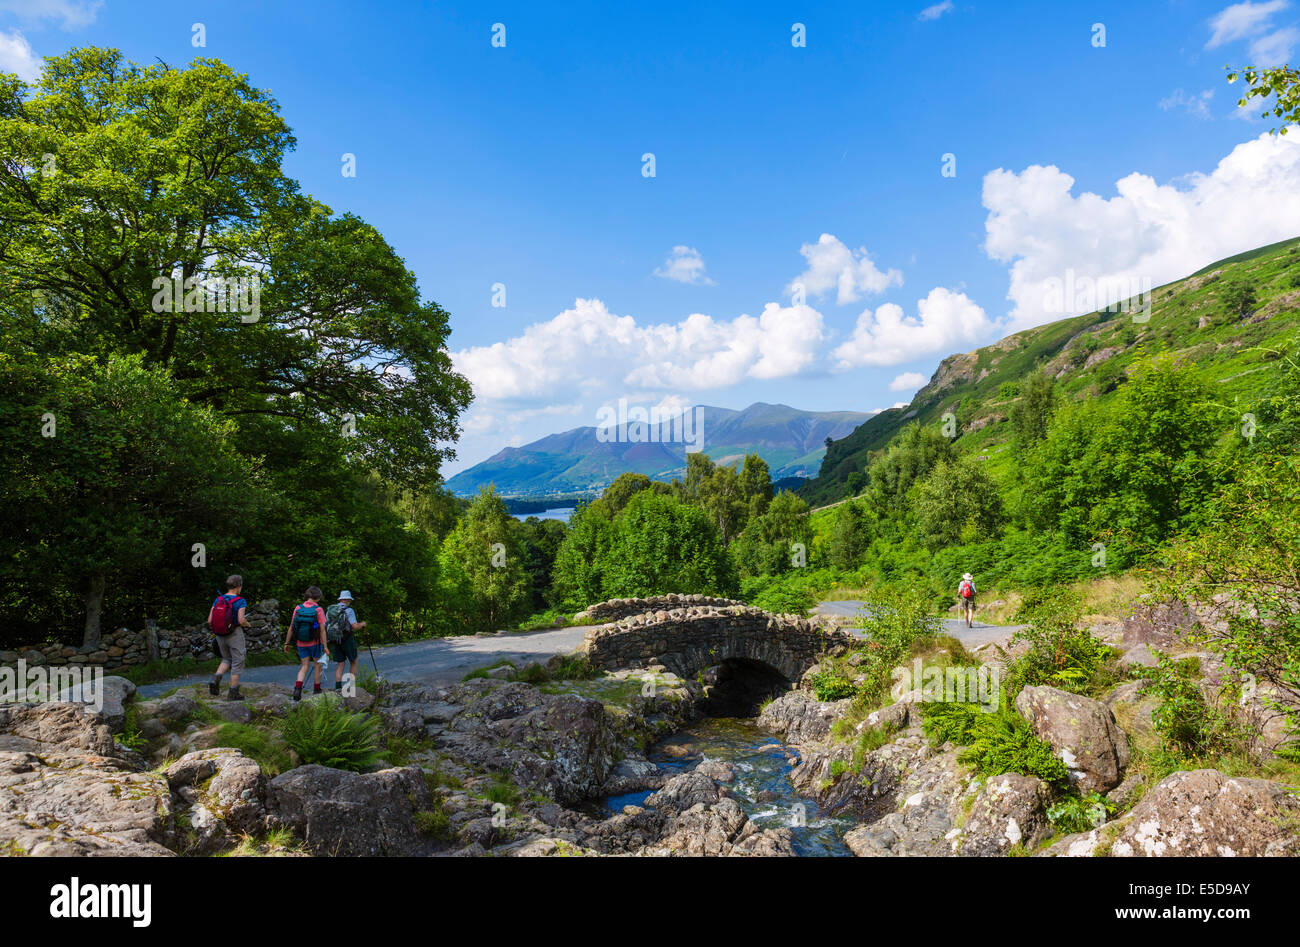 Walkers at Ashness Bridge with Skiddaw massif in the distance, Borrowdale, Lake District, England, UK - Stock Image